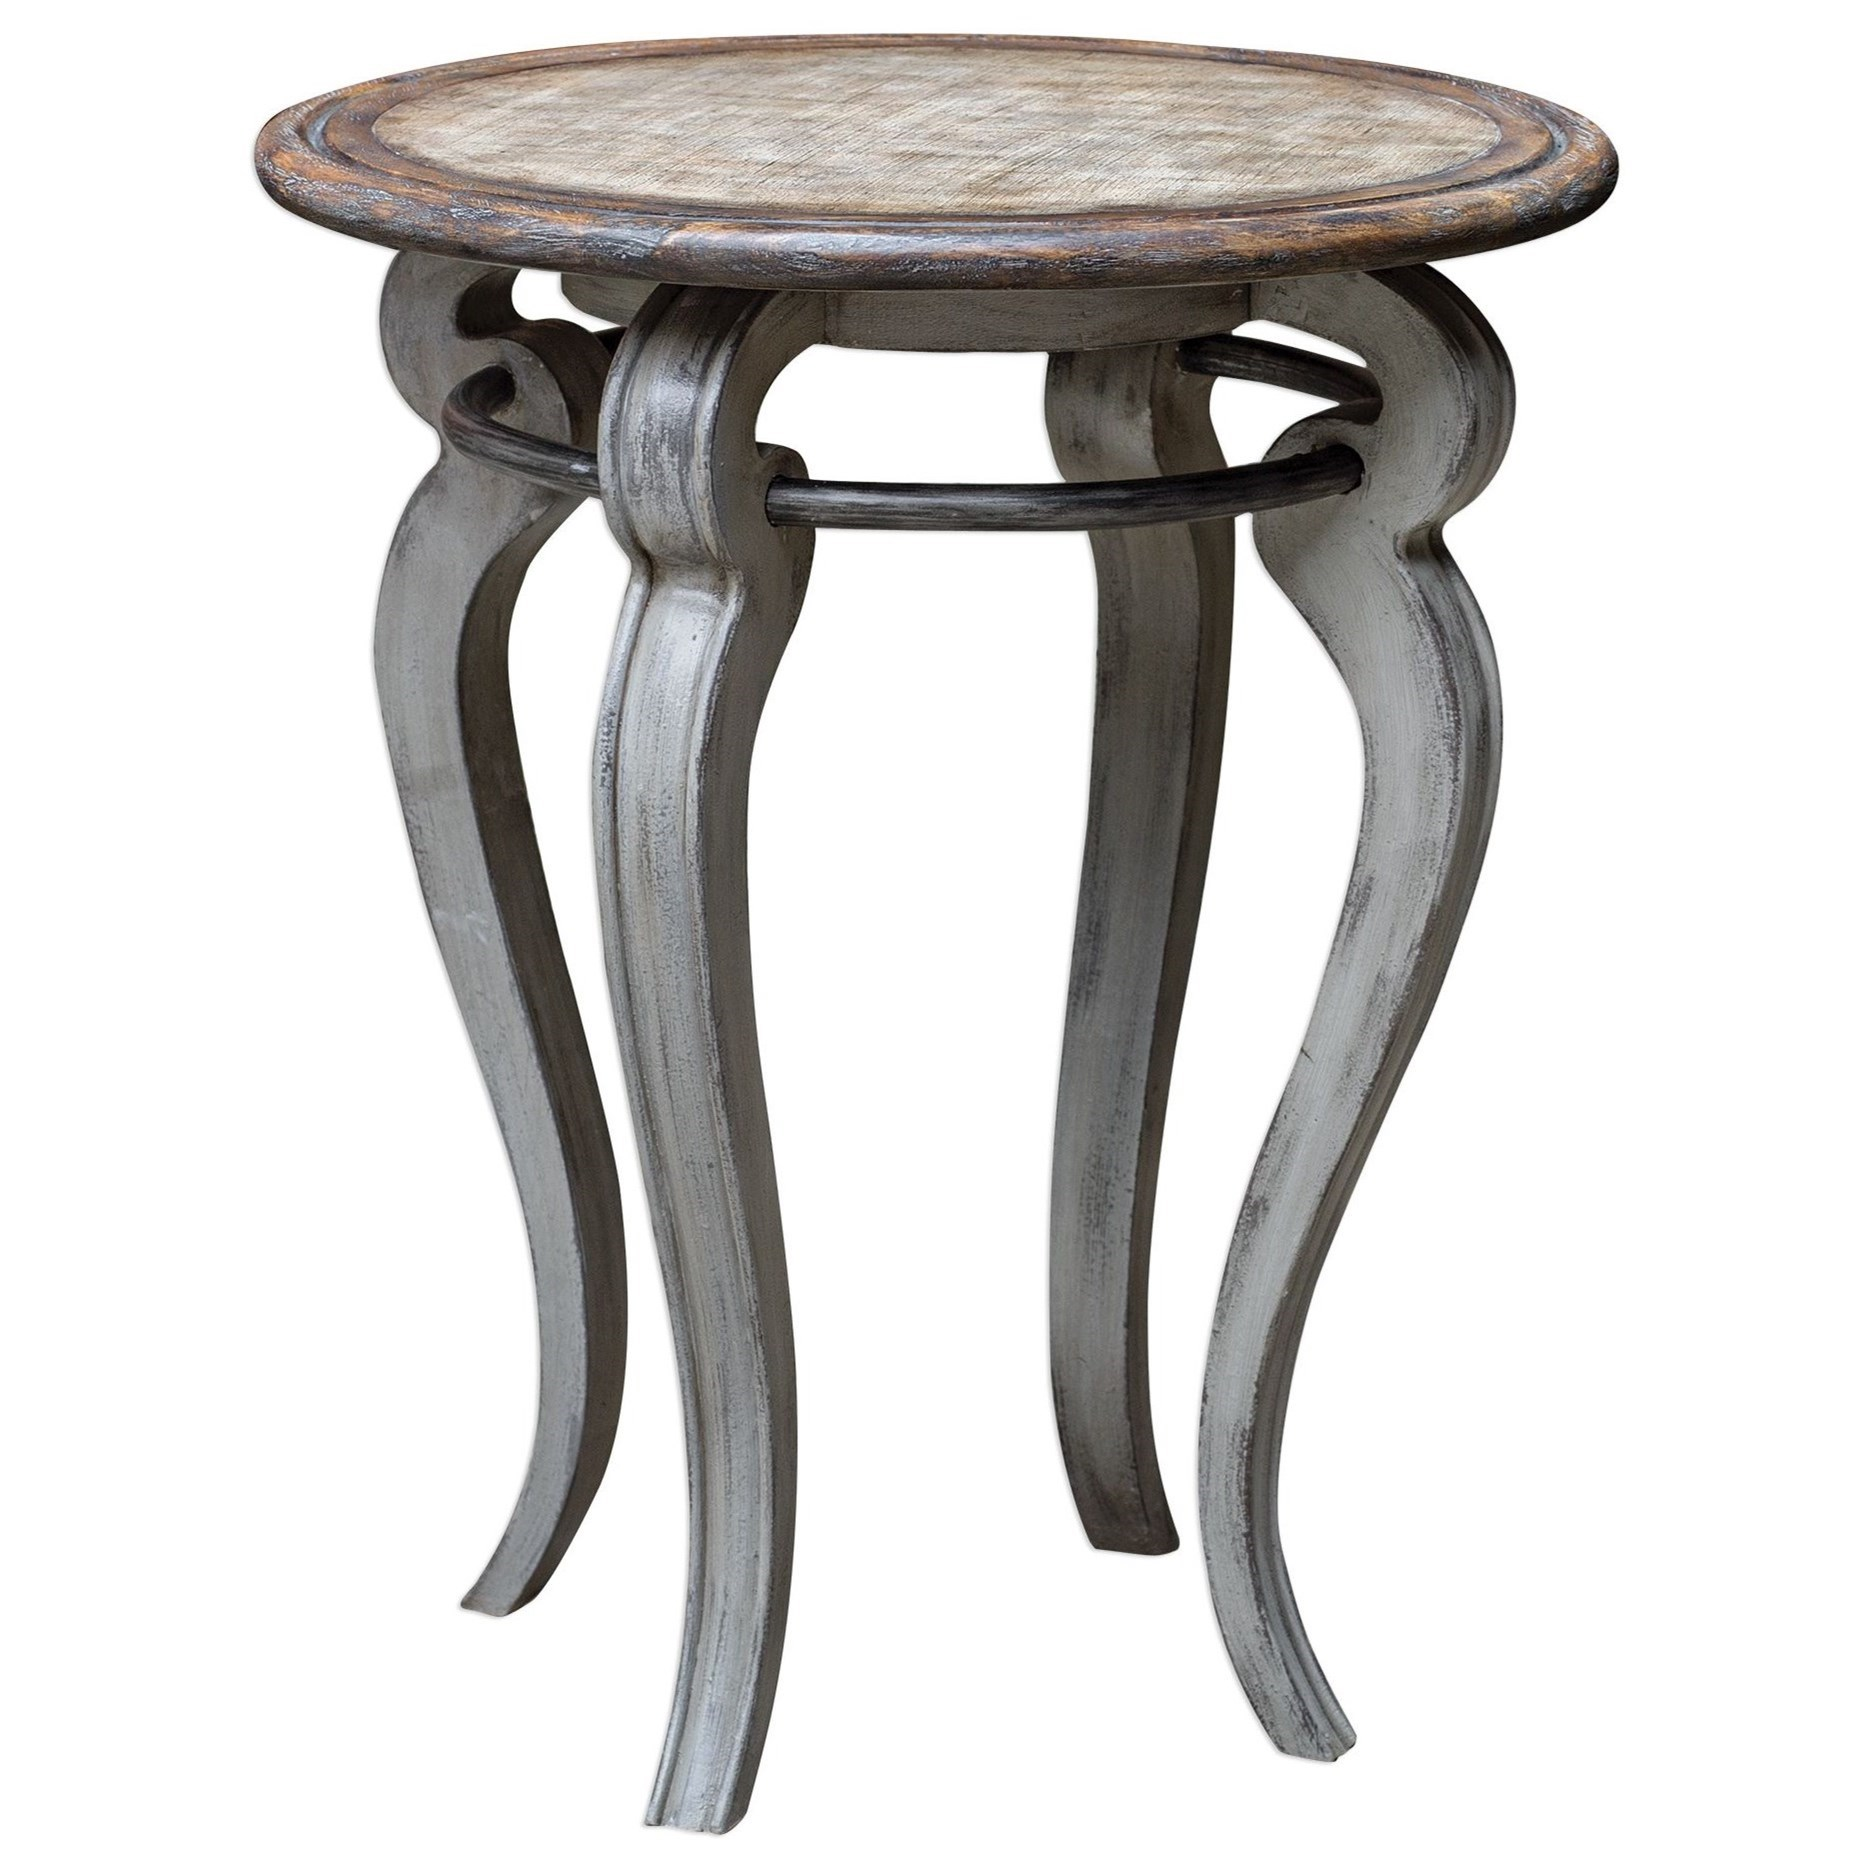 Accent Furniture - Occasional Tables Mariah Round Gray Accent Table by Uttermost at Goffena Furniture & Mattress Center